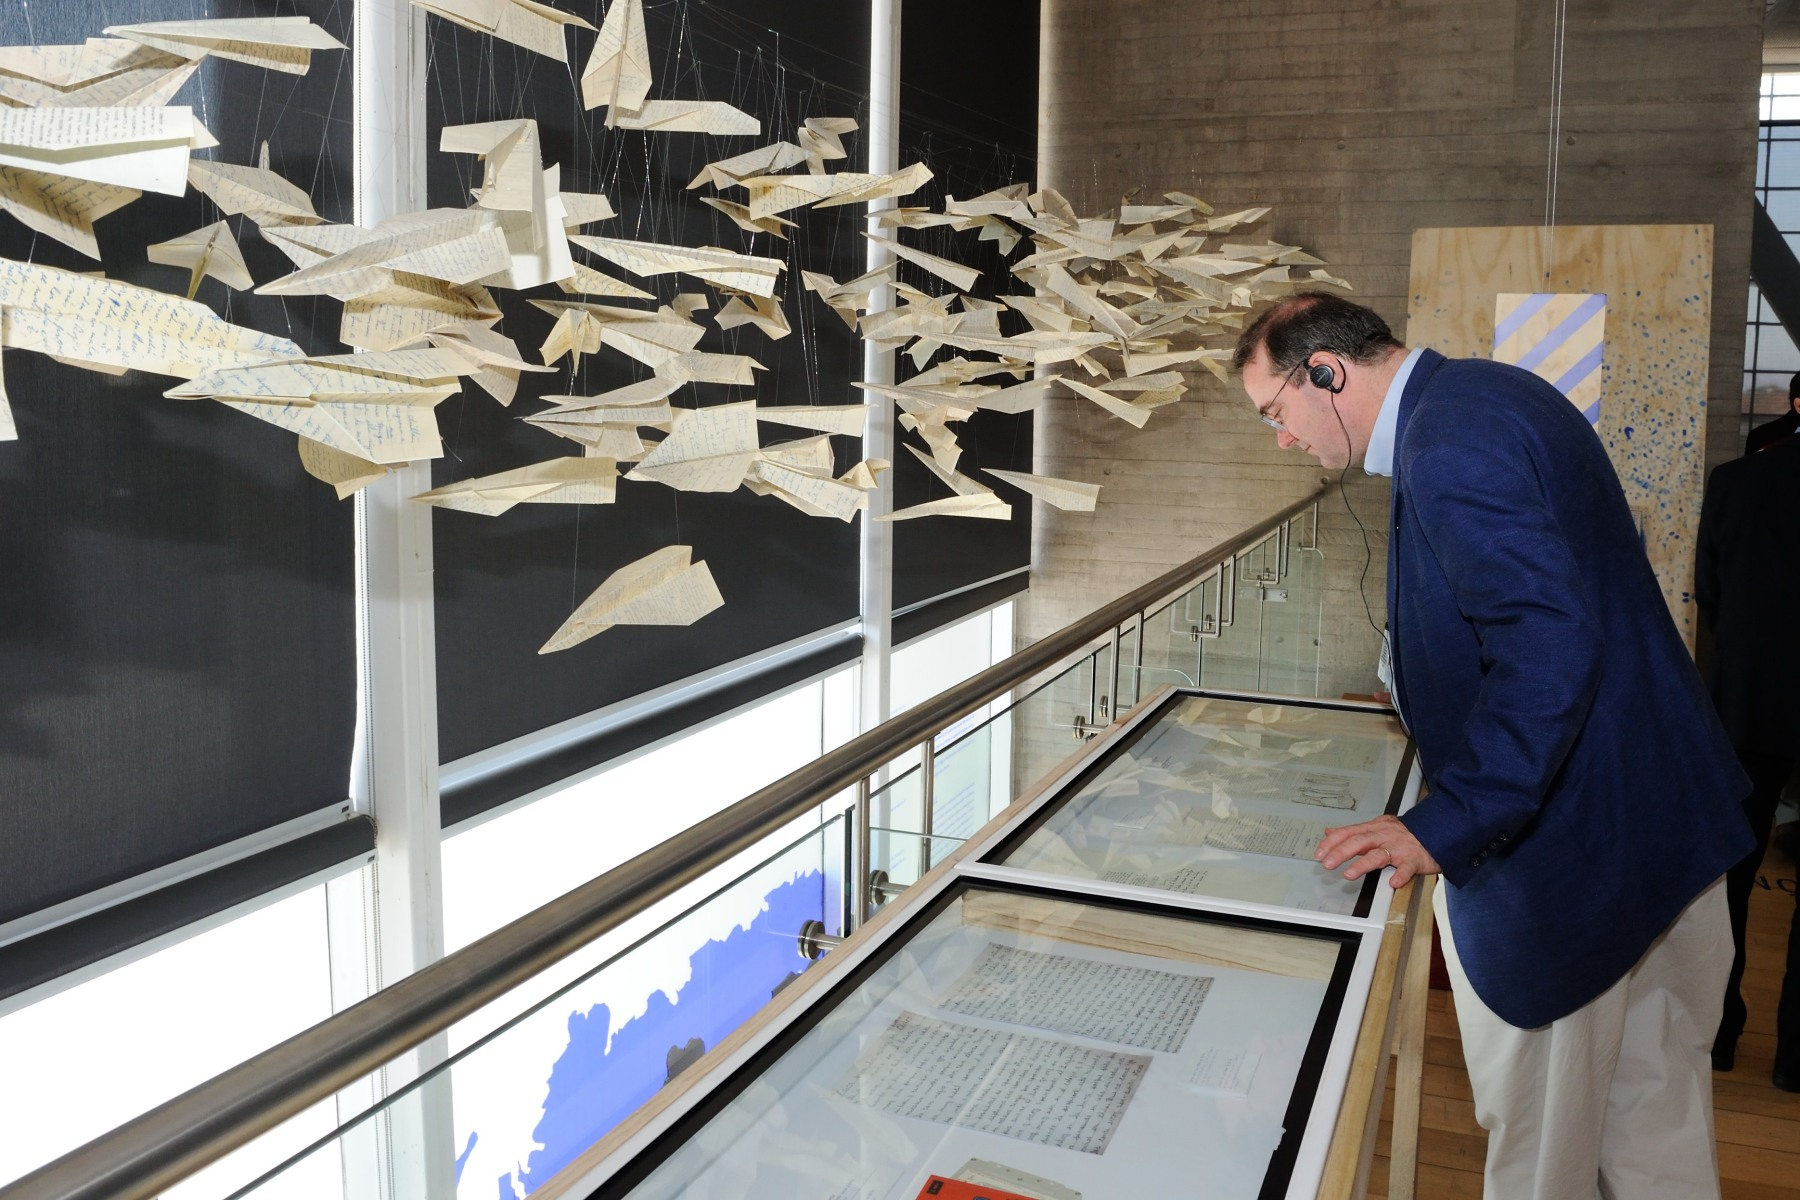 Canadian delegate Paul Davidson, President of the Association of Universities and Colleges of Canada, takes a few minutes to see some of the artefacts up-close.